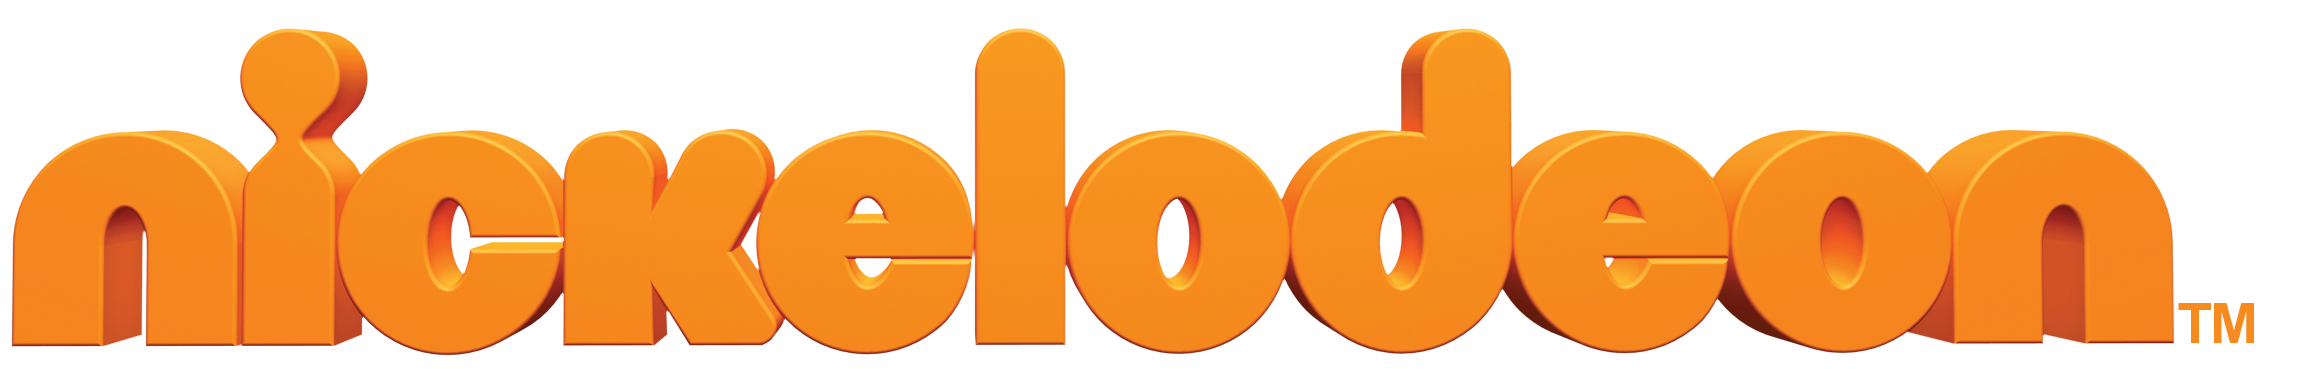 nickelodeon announces panels appearances amp signings for